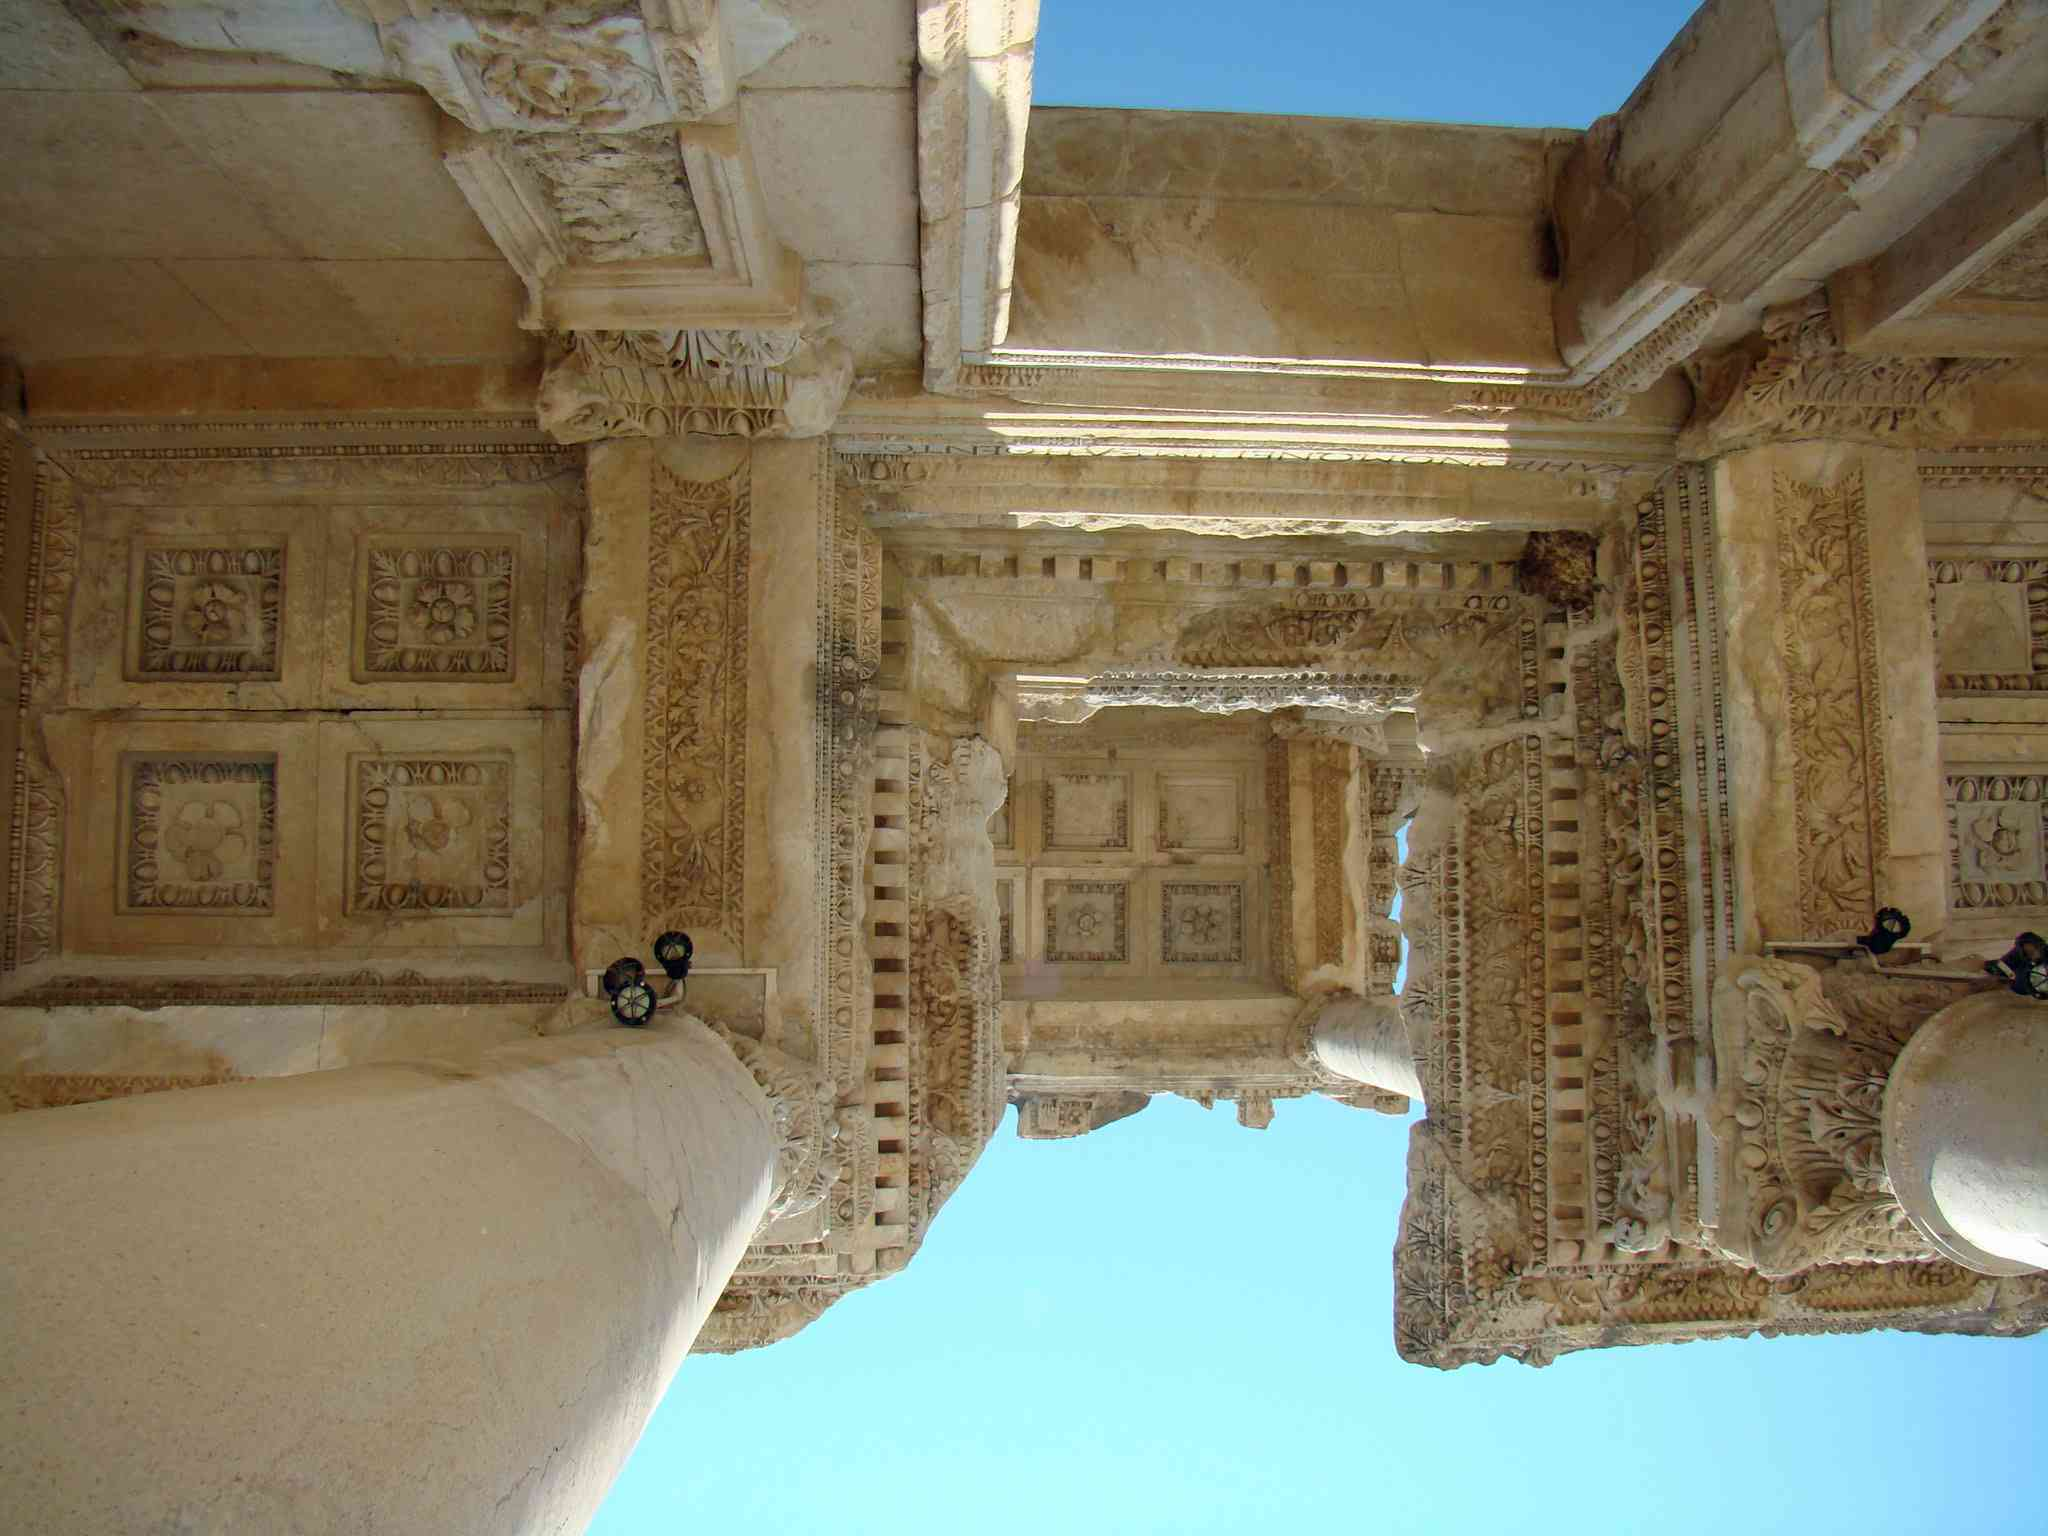 View of the ceilings of ruins in Turkey